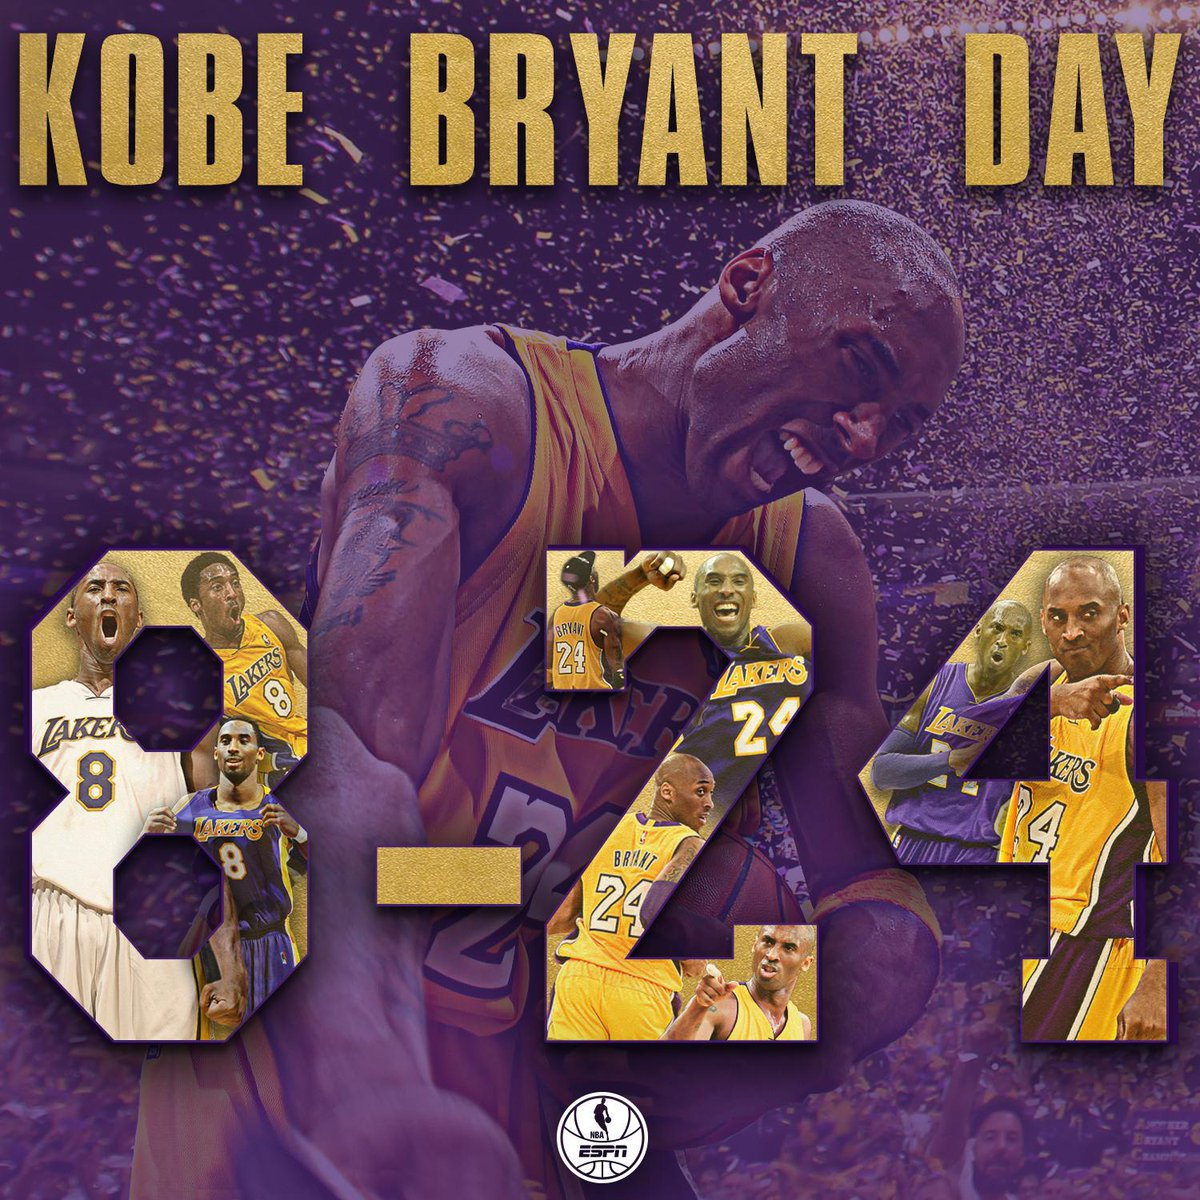 5 titles. 33,643 career points. 1,346 games. 20 years. 1 Mamba. https://t.co/AxoXkh63eQ